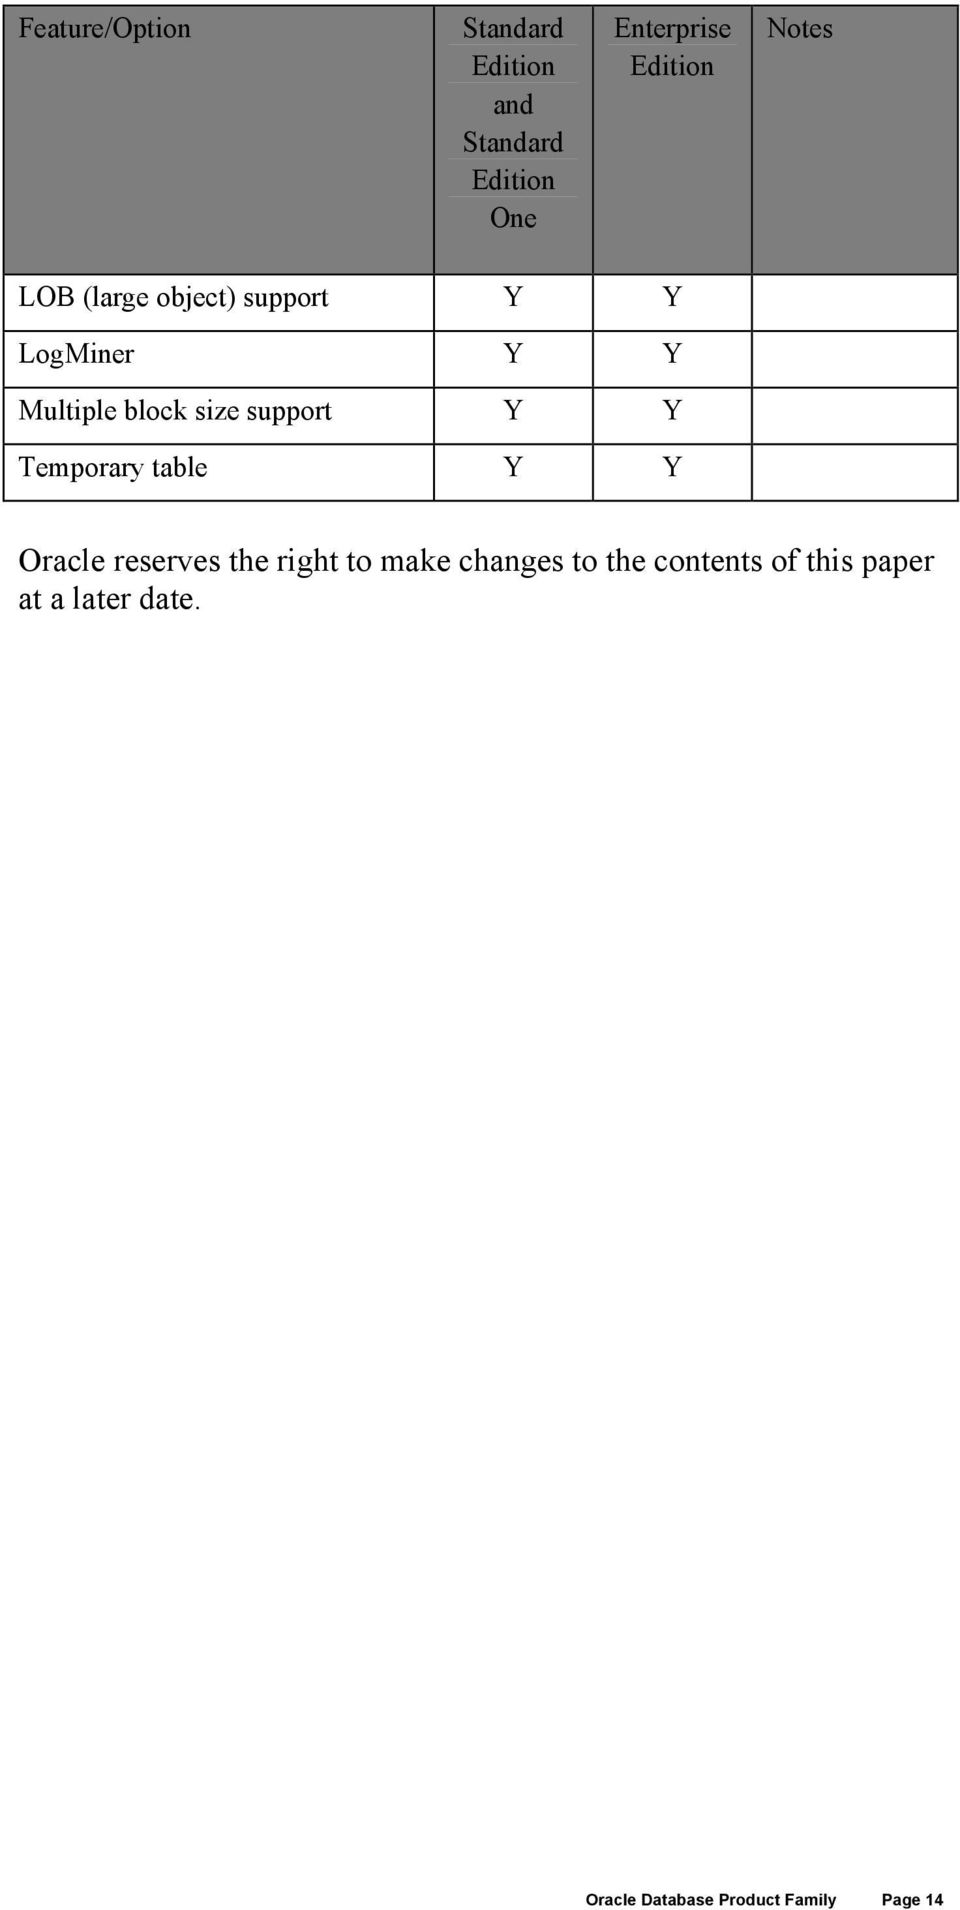 Oracle reserves the right to make changes to the contents